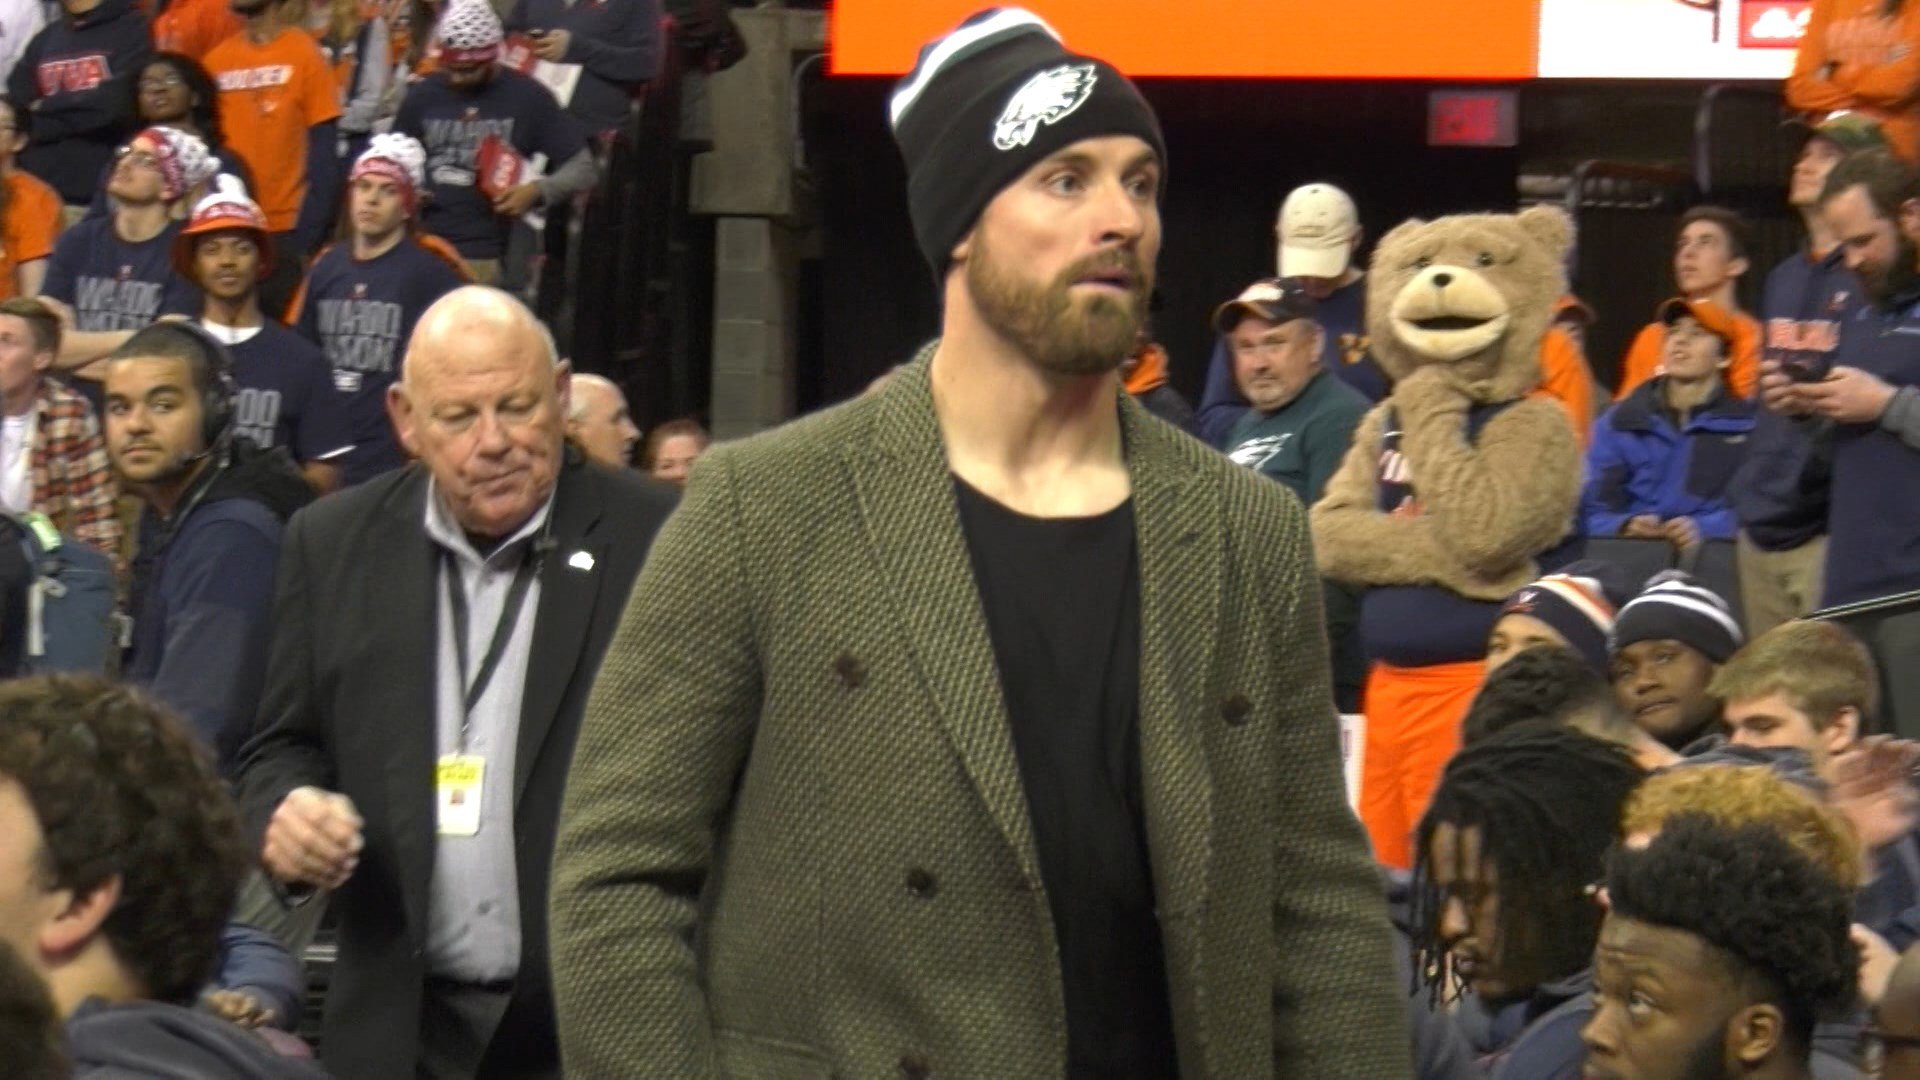 UVA Alum and Eagles defensive end Chris Long was a special guest on College GameDay's pregame show